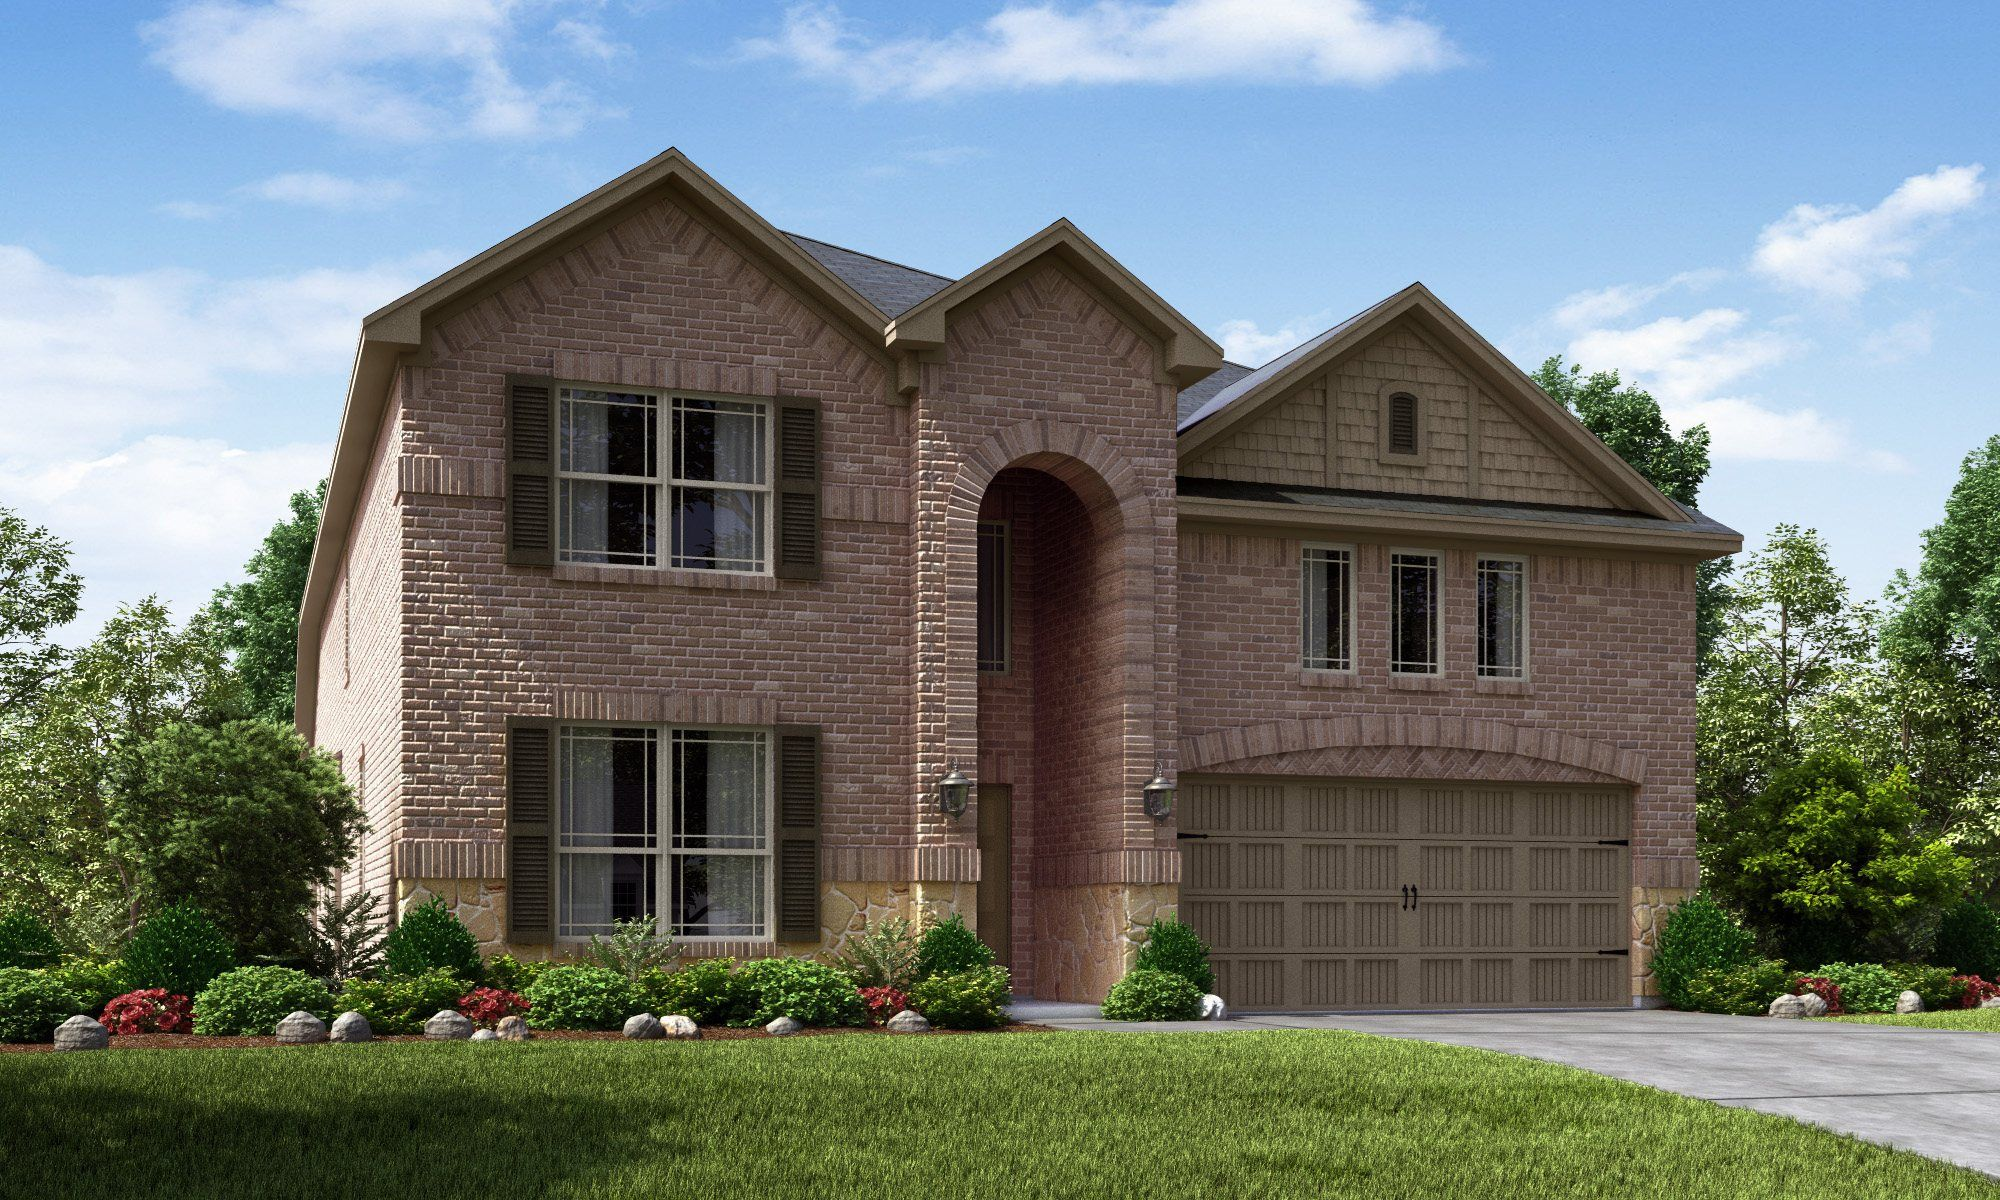 Single Family for Sale at Avery Pointe-Arbors - Live Oak 320 Copper Switch Drive Anna, Texas 75409 United States